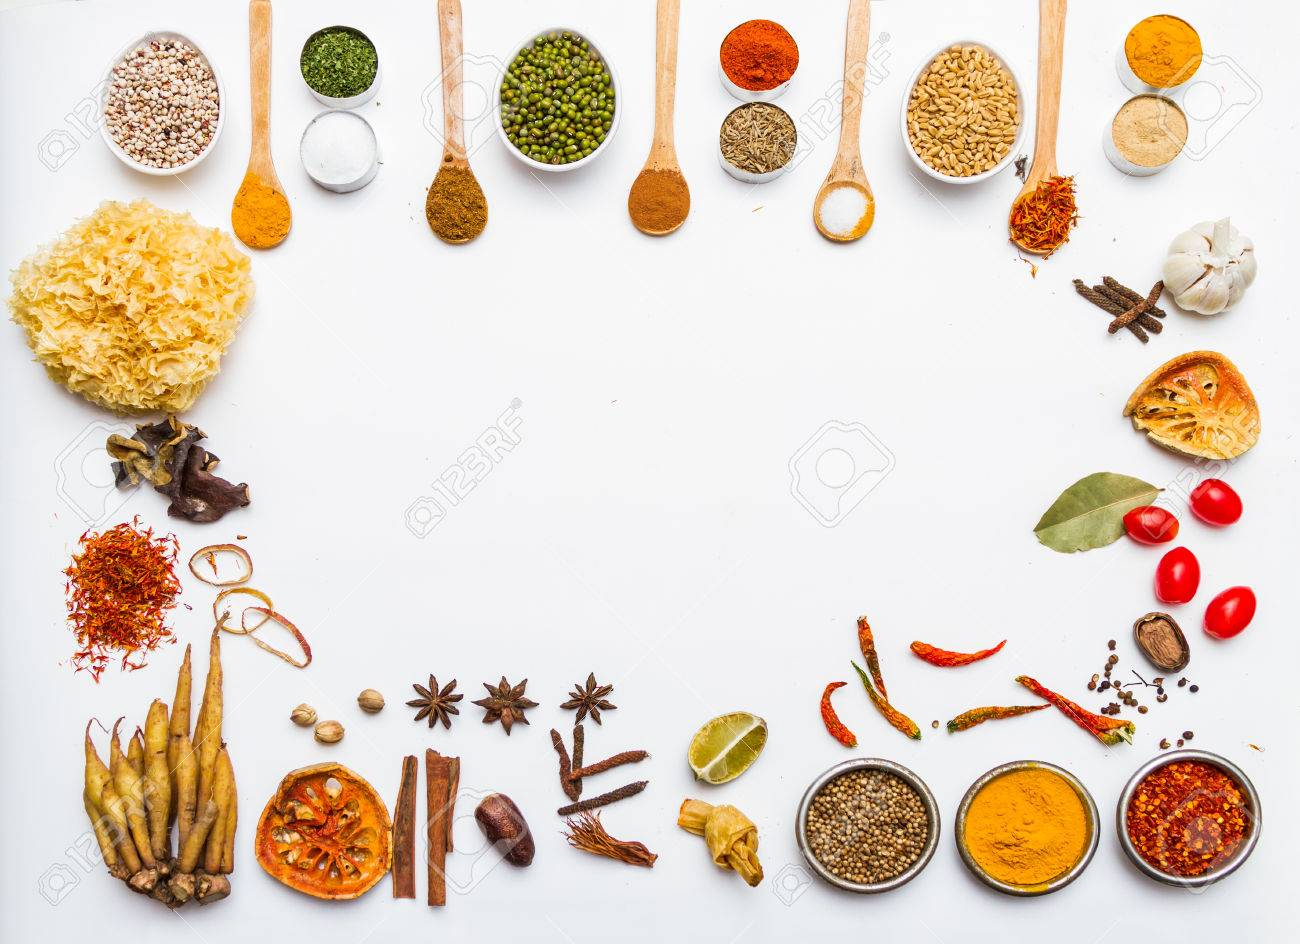 Many spices and herb for health background for decorate design. Stock Photo - 41933475